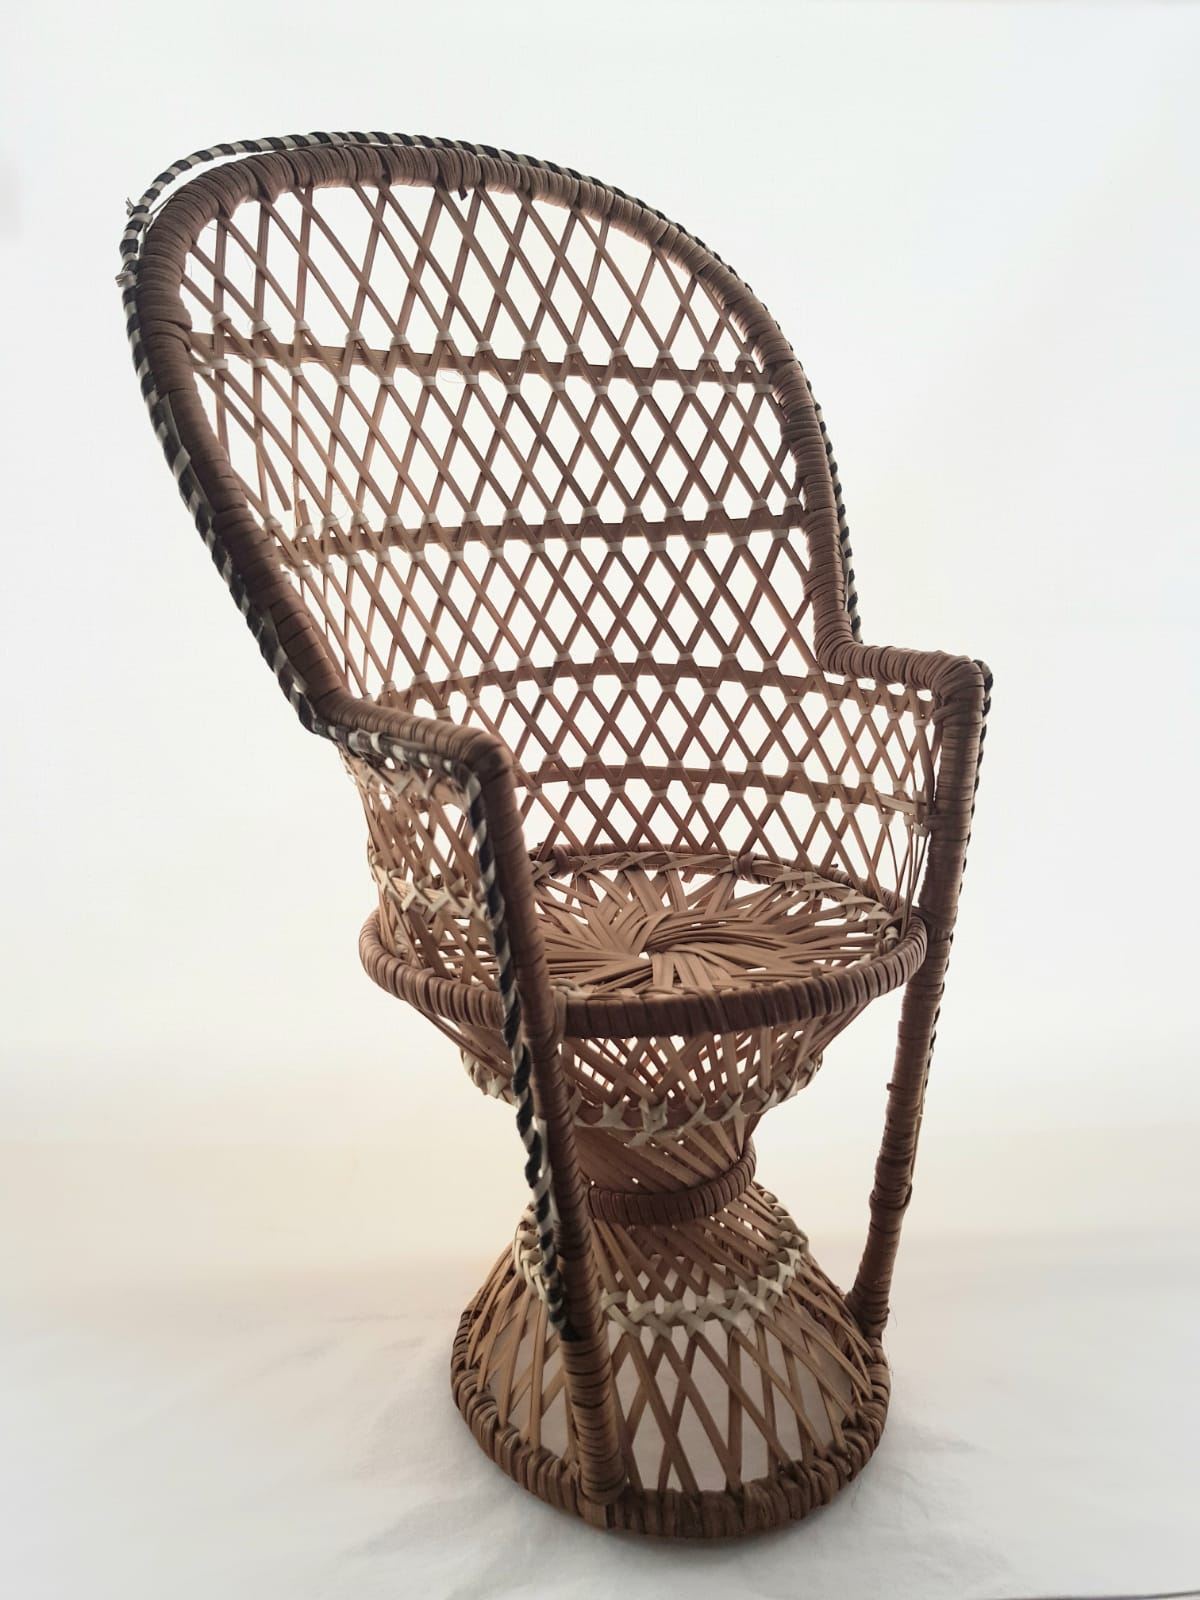 Vintage rattan miniature Peacock Chair, available to buy online at www.qwinkydink.co.uk